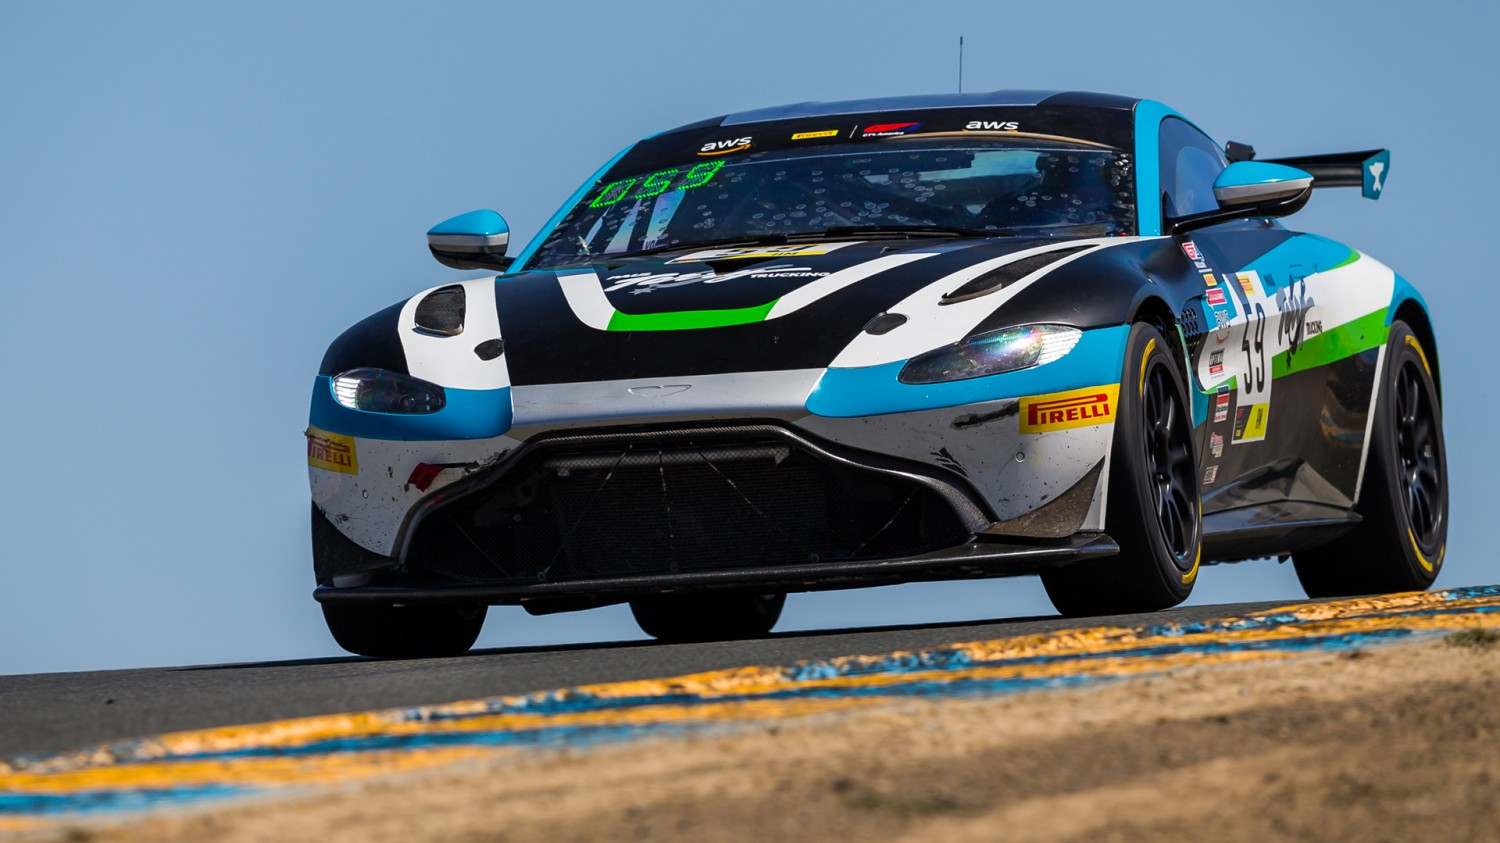 Rearden Racing Heads to Popular Road America After Impressive Wins  In Recent Pirelli GT4 America Action in GT4 Sprint and SprintX Action